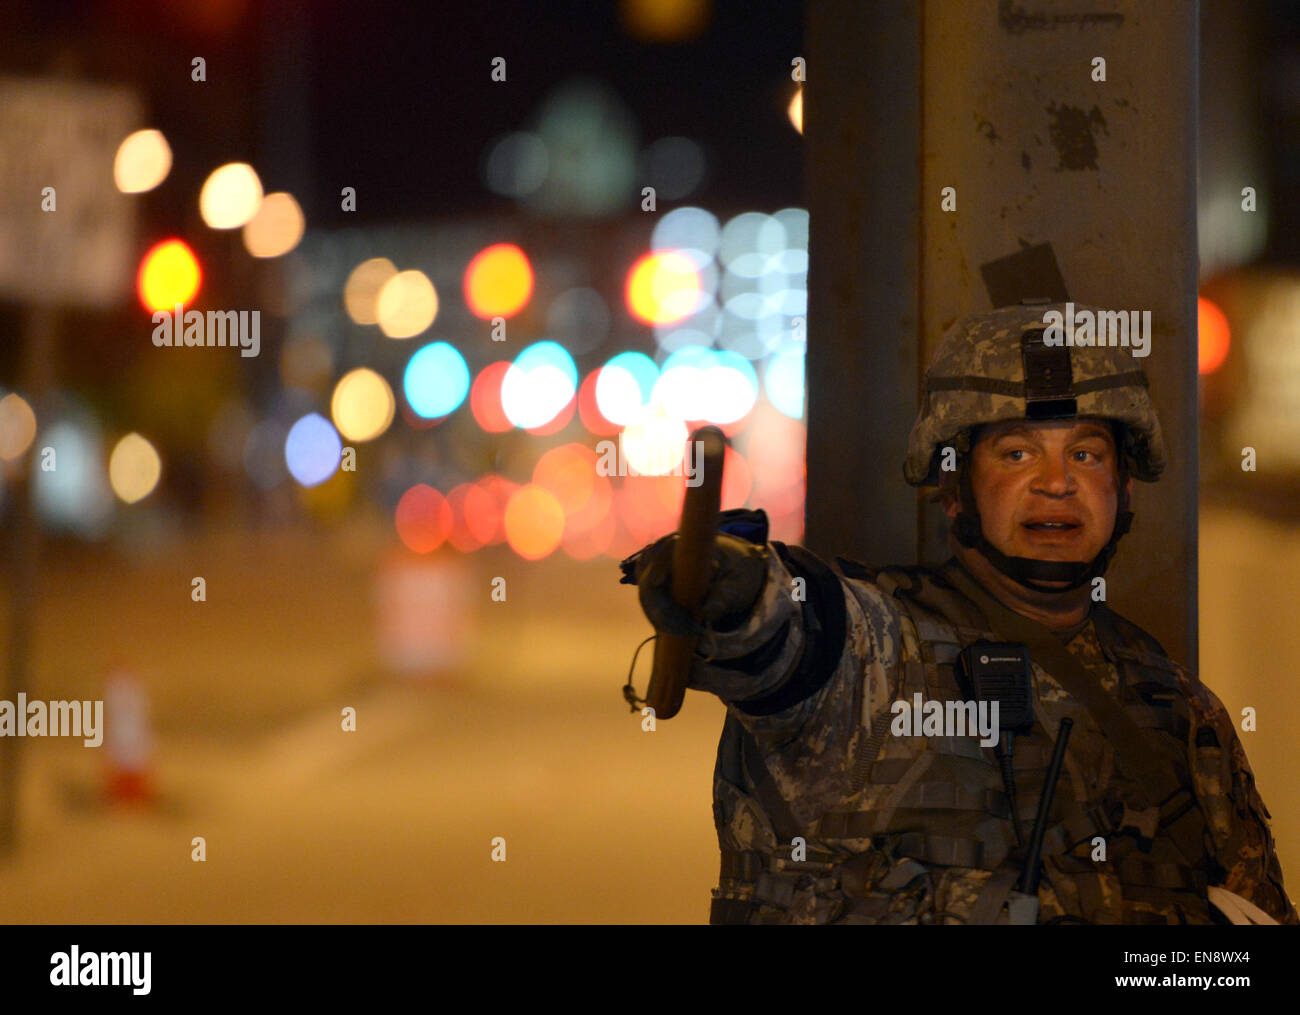 Baltimore, USA. 29th Apr, 2015. A soldier of national guard gestures during a curfew in Baltimore, Maryland, the - Stock Image